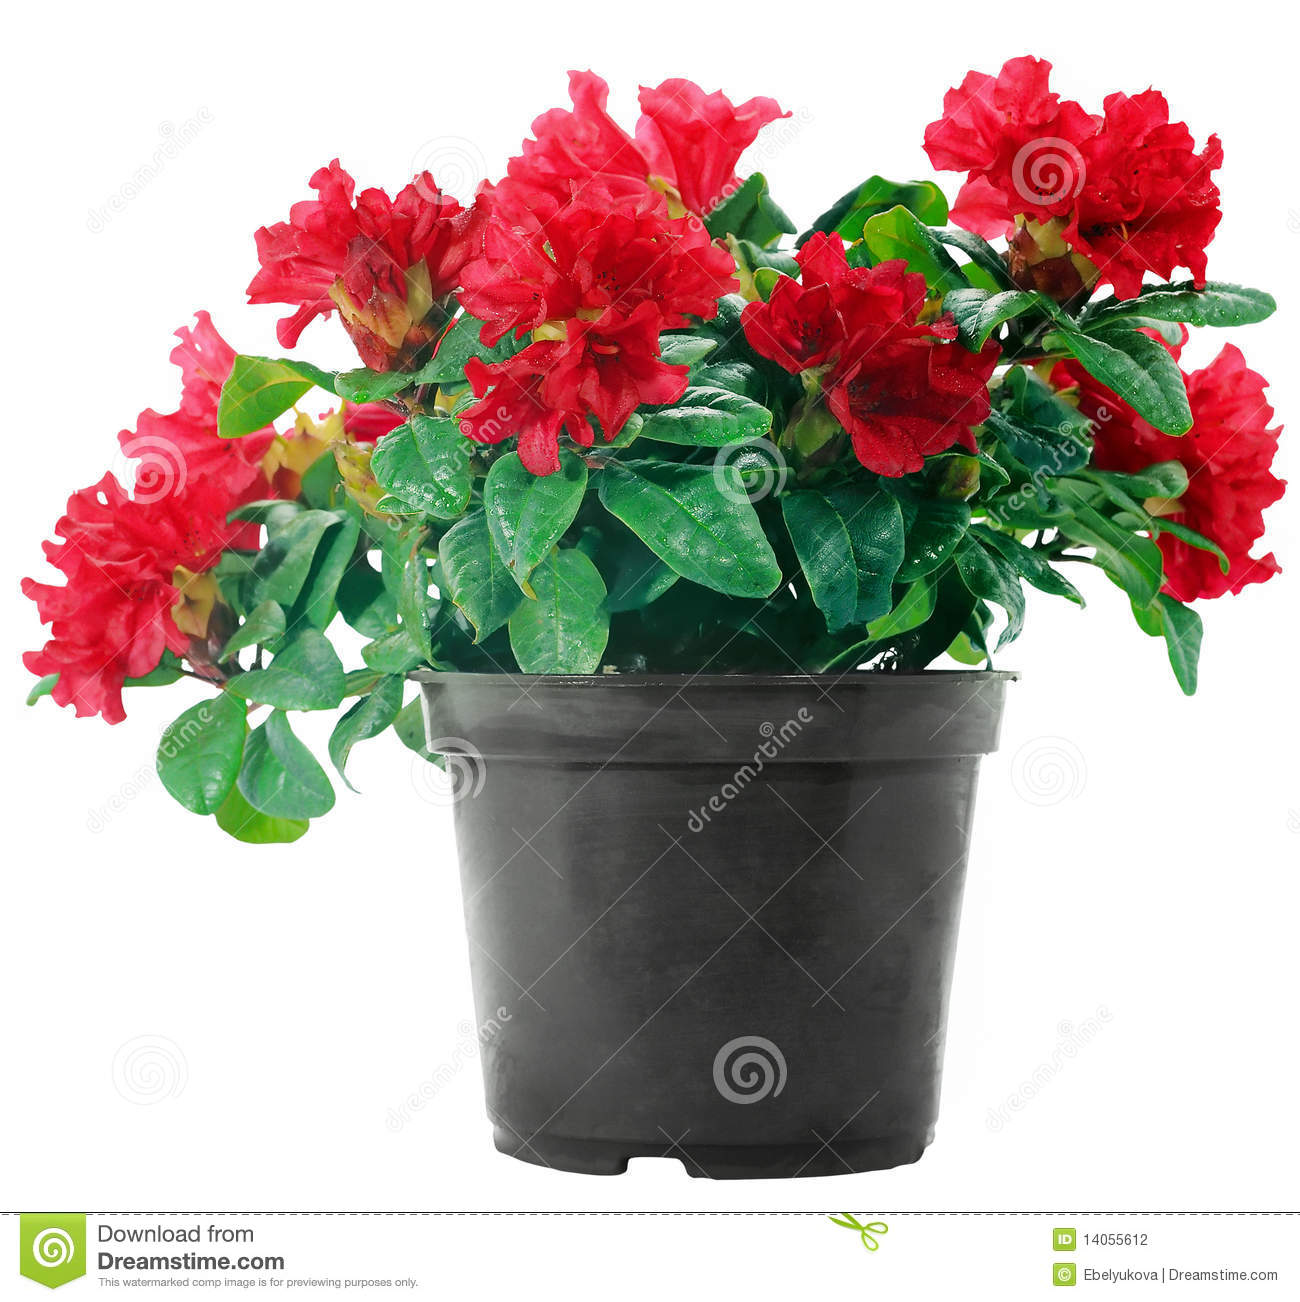 Red flowers in a plastic pot on white